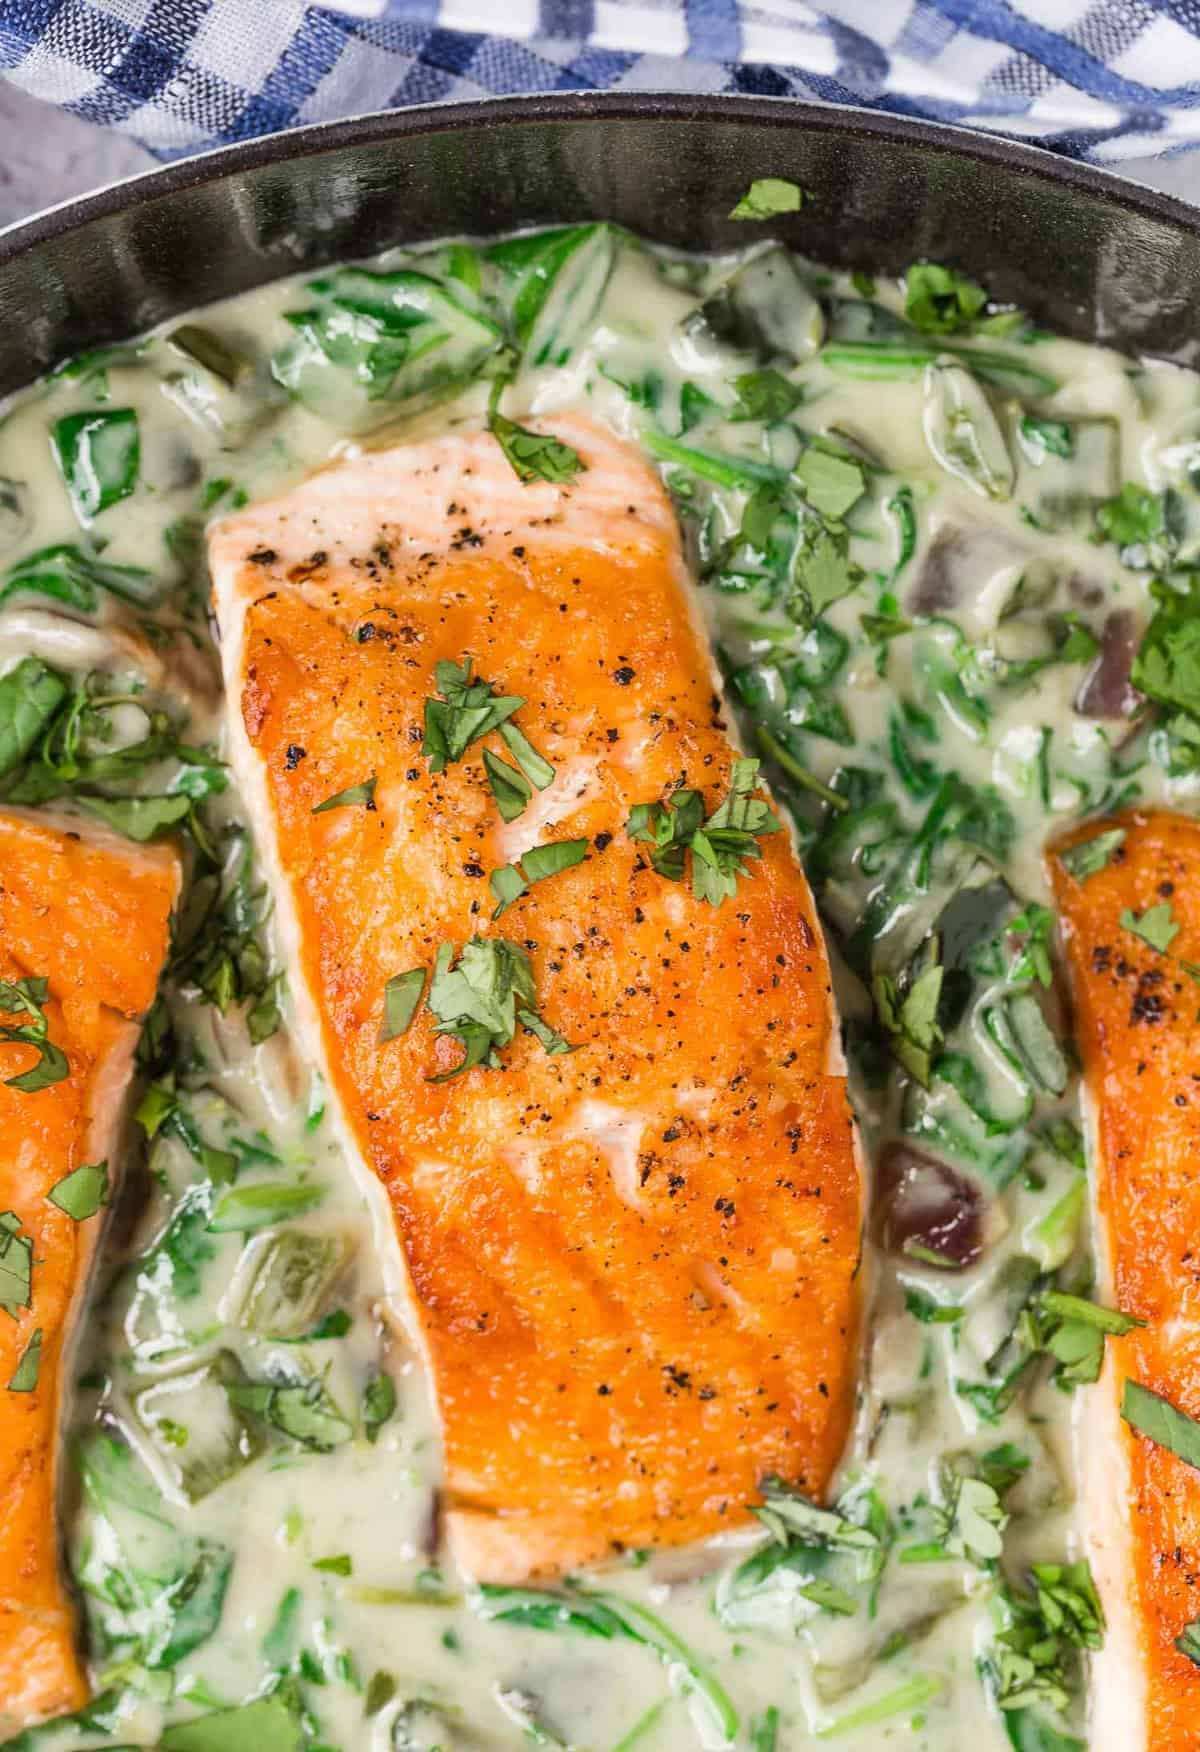 Overhead view of a fillet of seared salmon in spinach cream sauce.